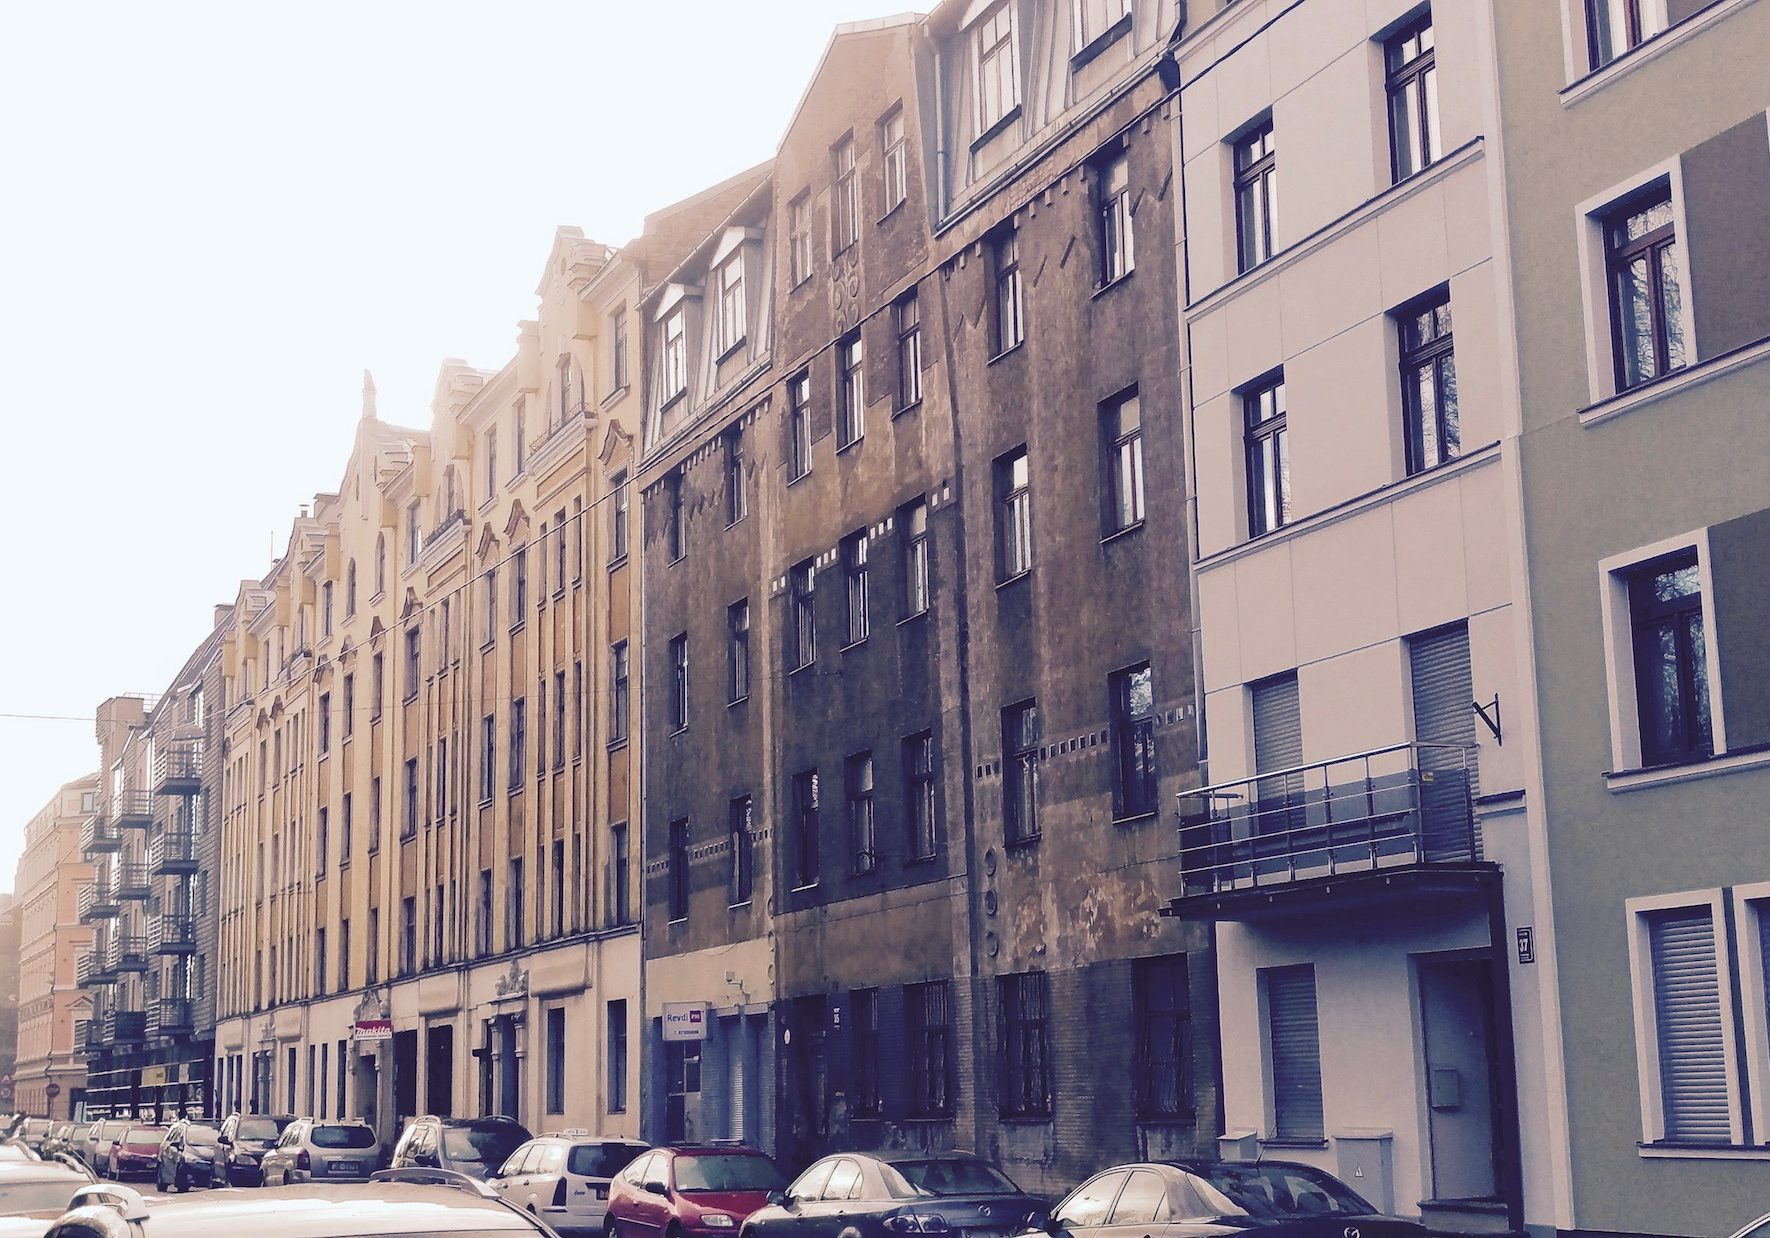 Riga Art Nouveau residential buildings